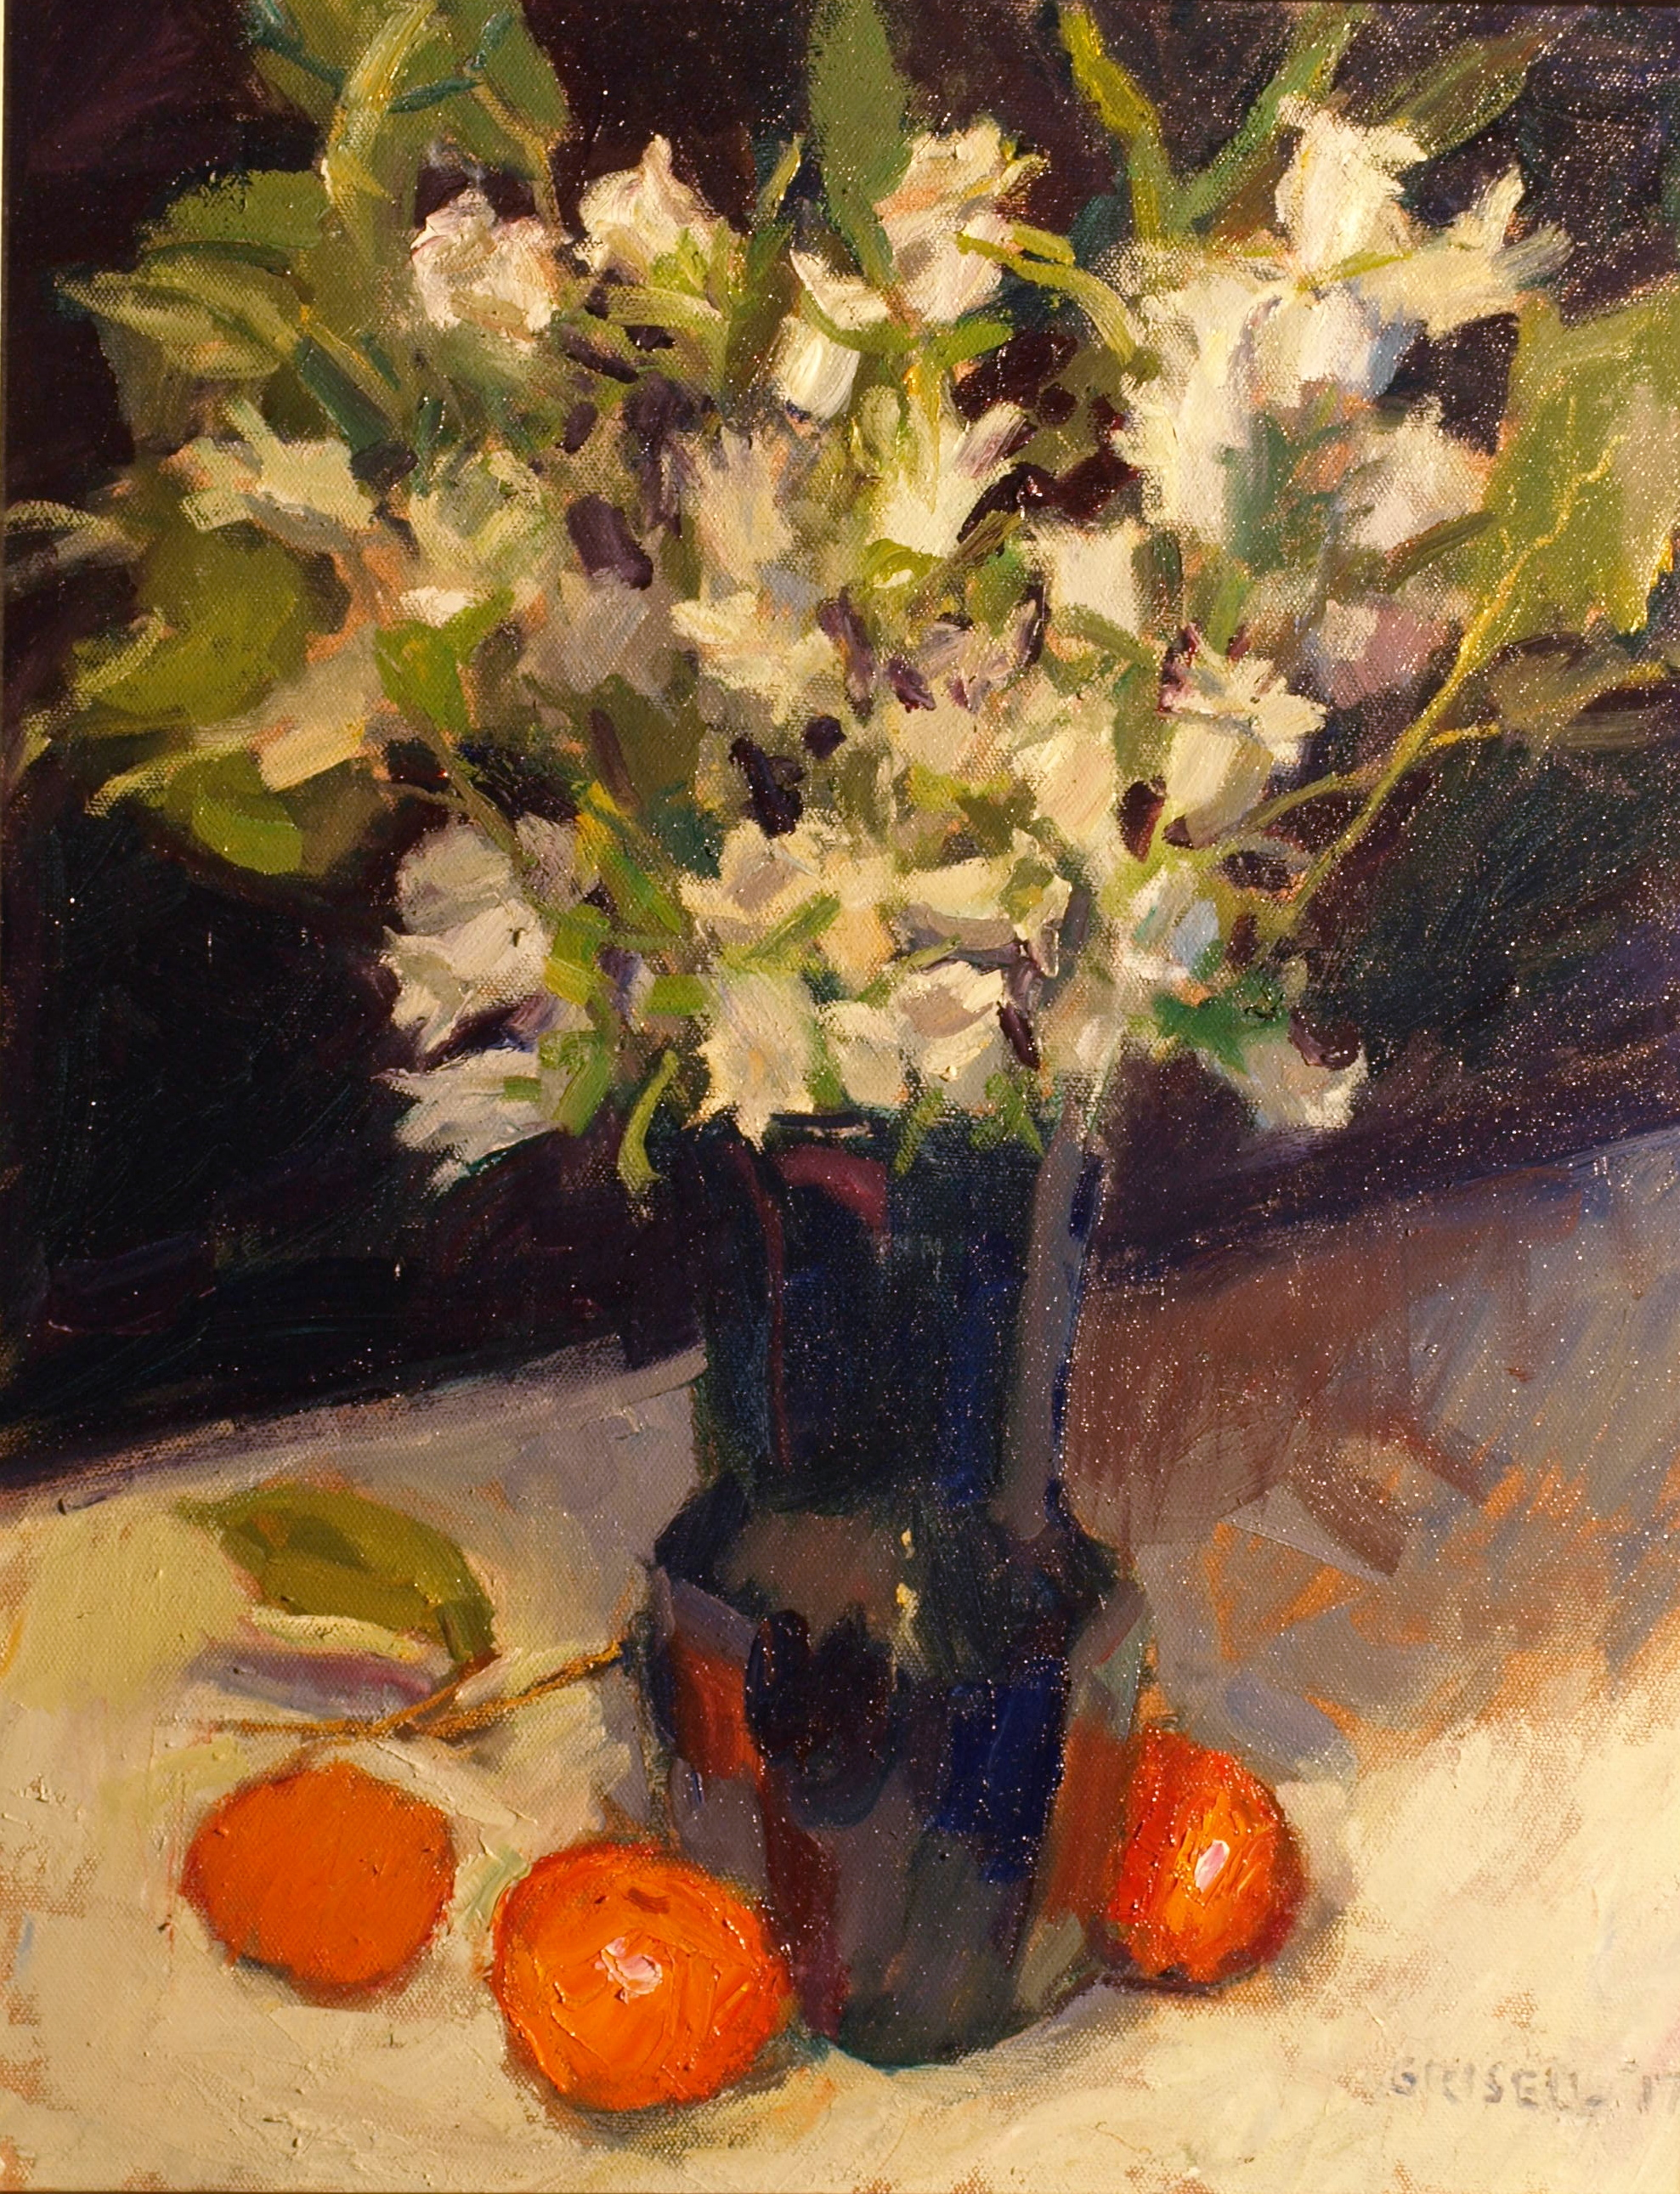 Campanula, Oil on Canvas, 20 x 16 Inches, by Susan Grisell, $550